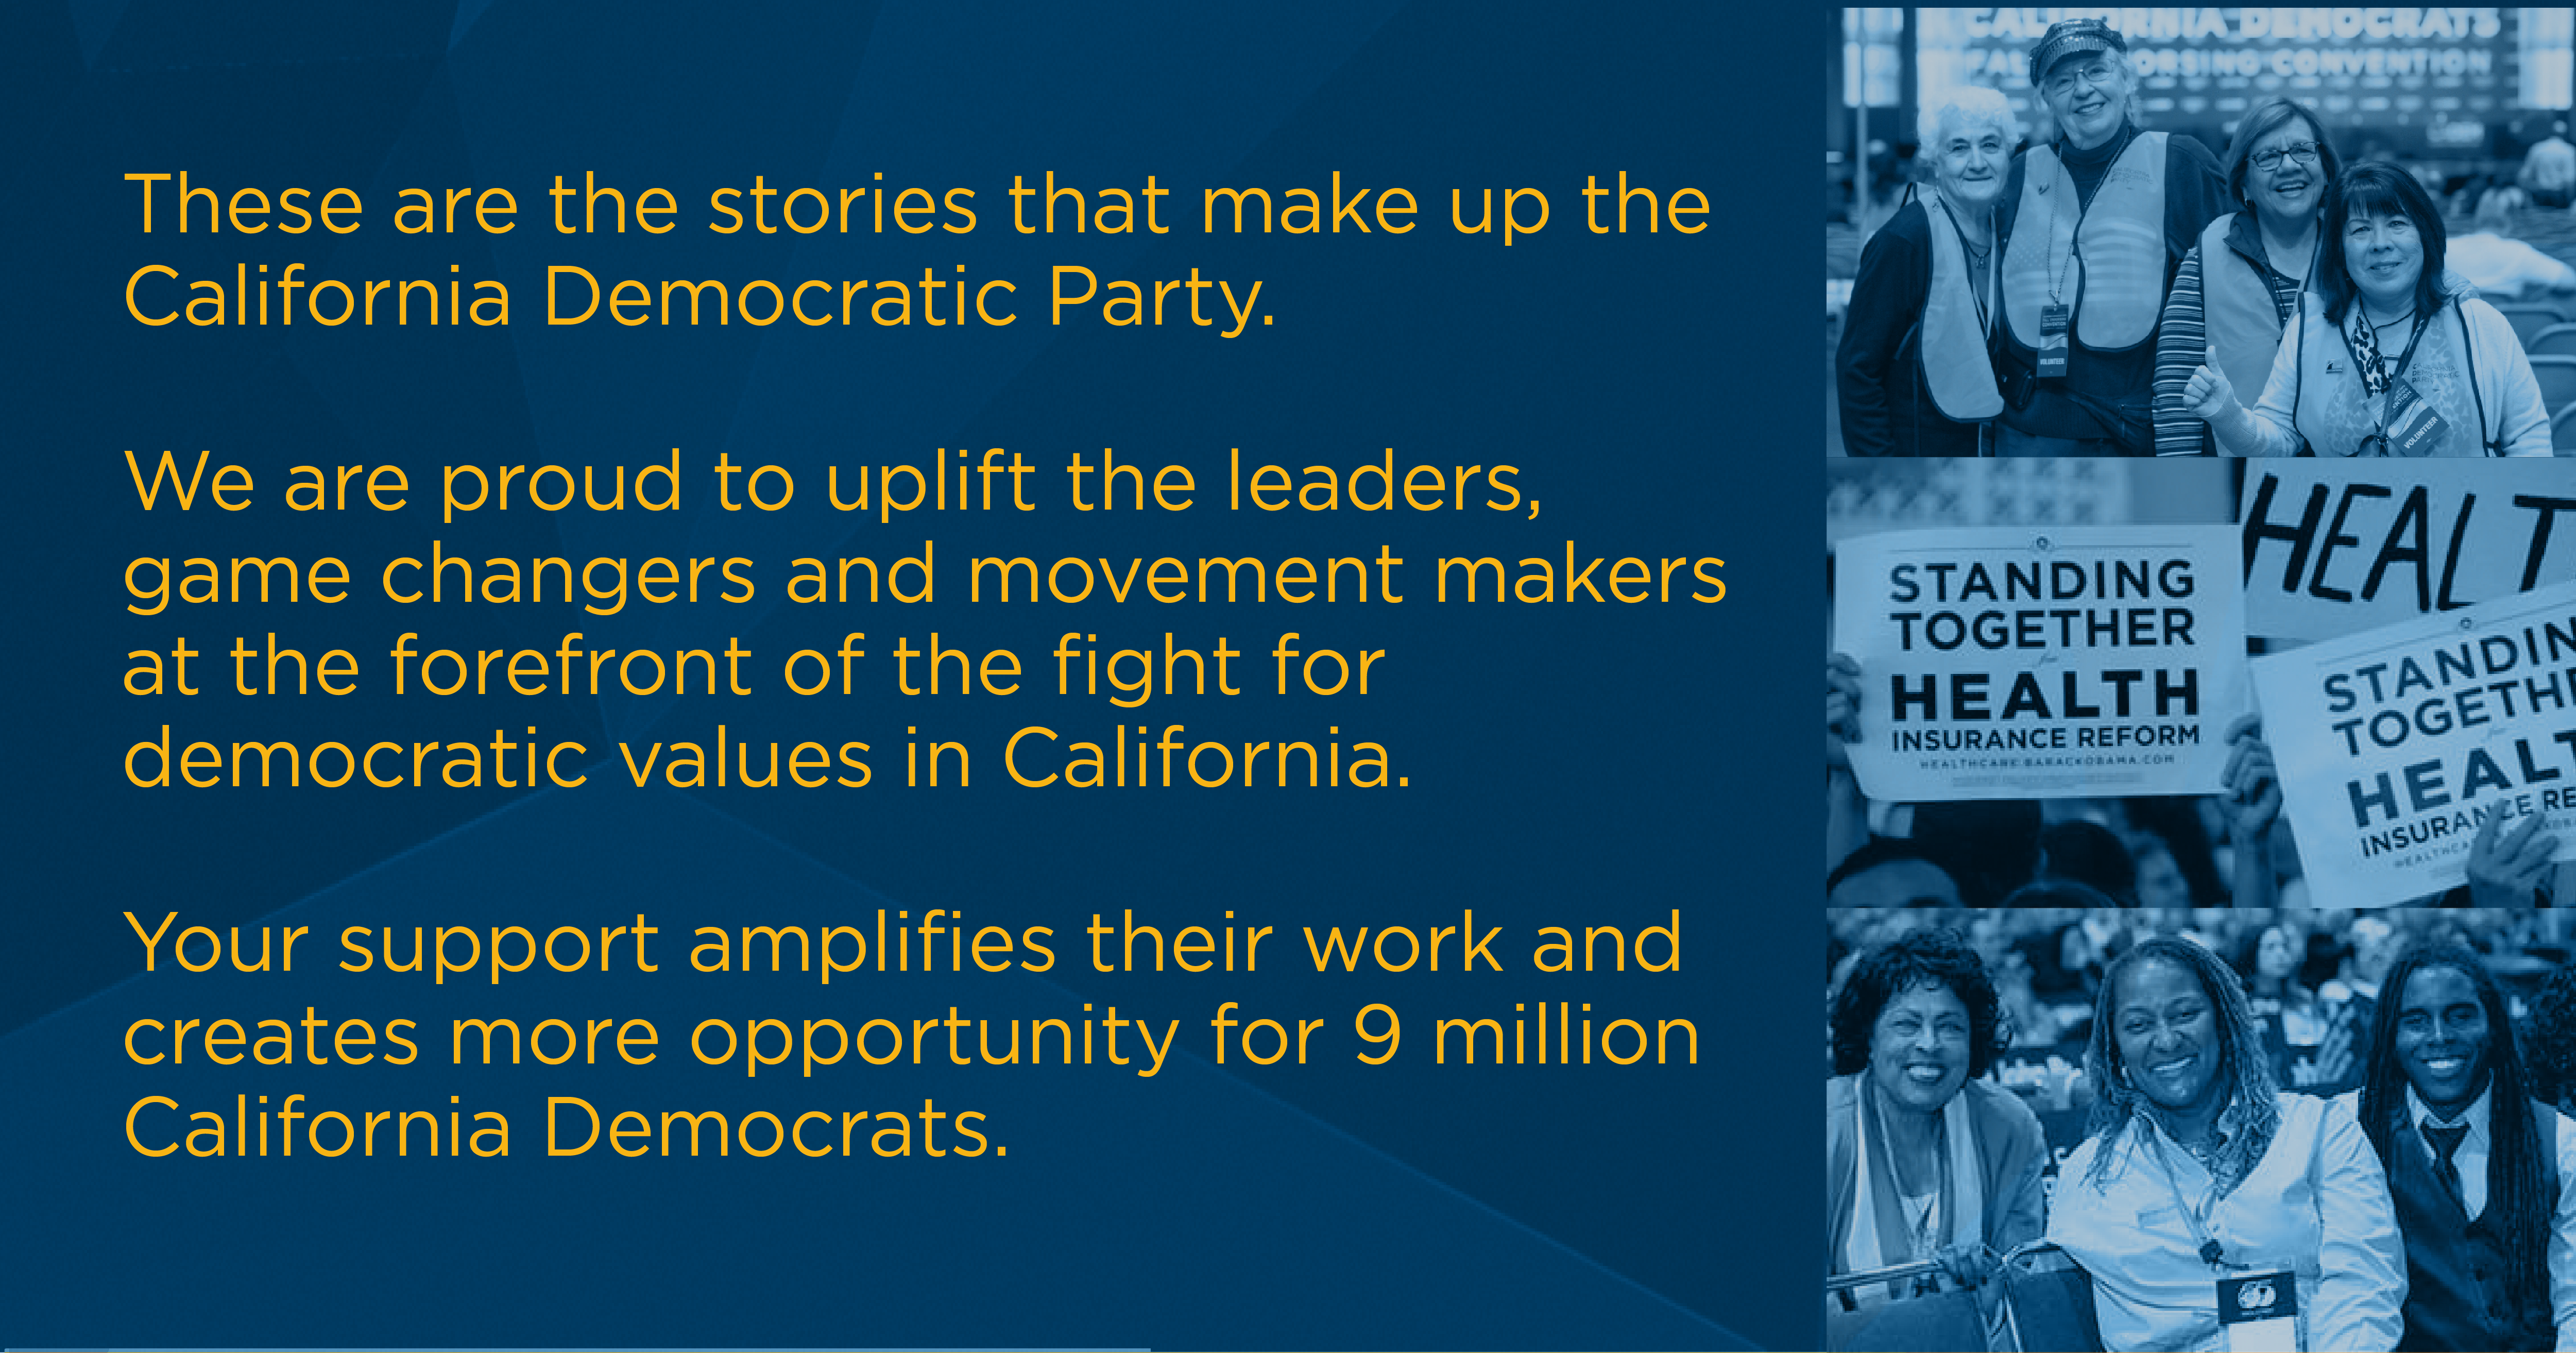 These are the stories that make up the California Democratic Party.   We are proud to uplift the leaders, groundbreakers, and movement makers at the forefront of the fight for inclusion and democratic values in California.  Your support amplifies their work and creates more opportunity for millions of California leaders.